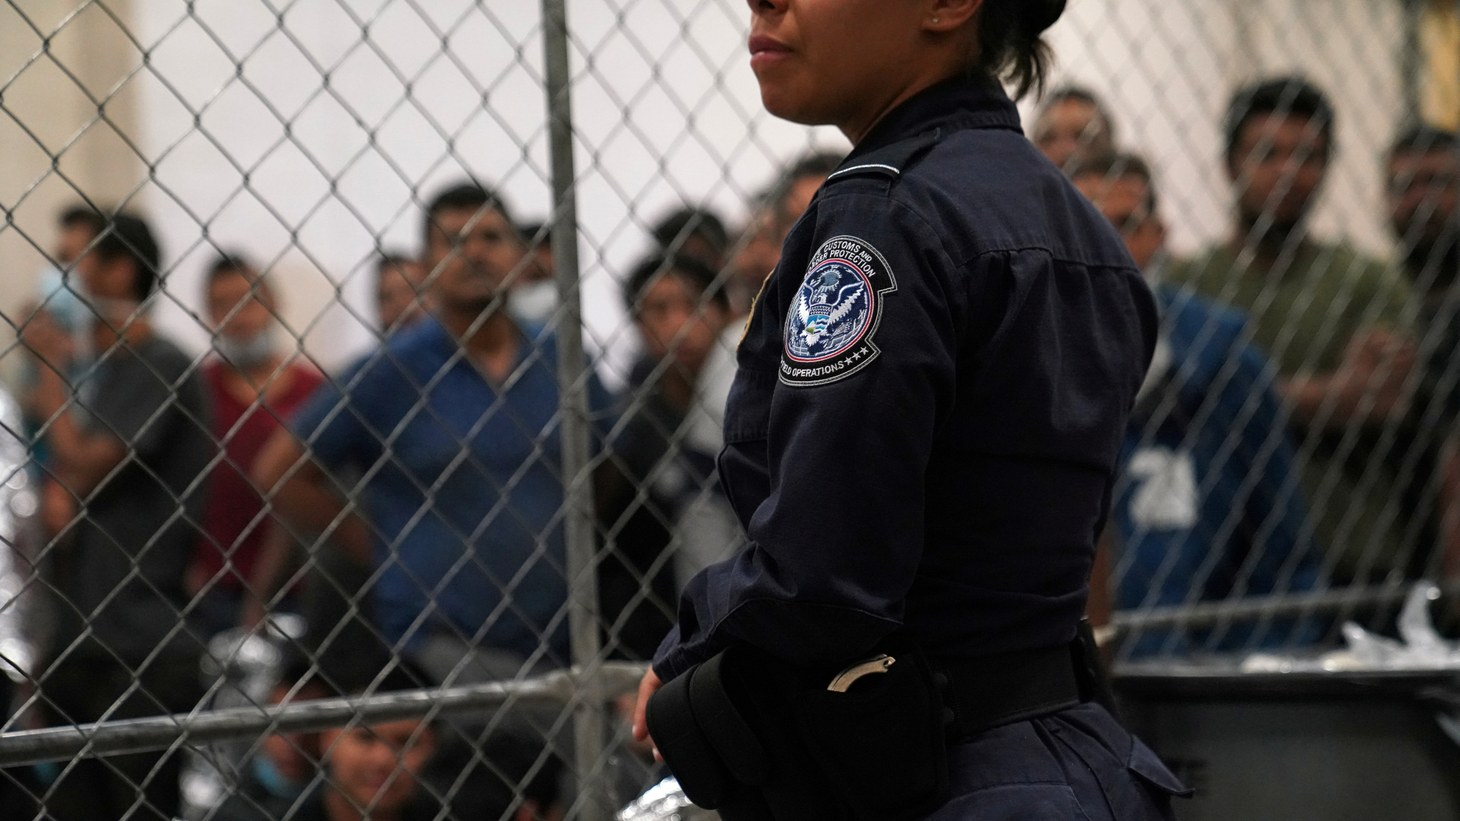 A U.S. Customs and Border Protection agent monitors single-adult male detainees at Border Patrol station in McAllen, Texas, U.S. July 12, 2019.